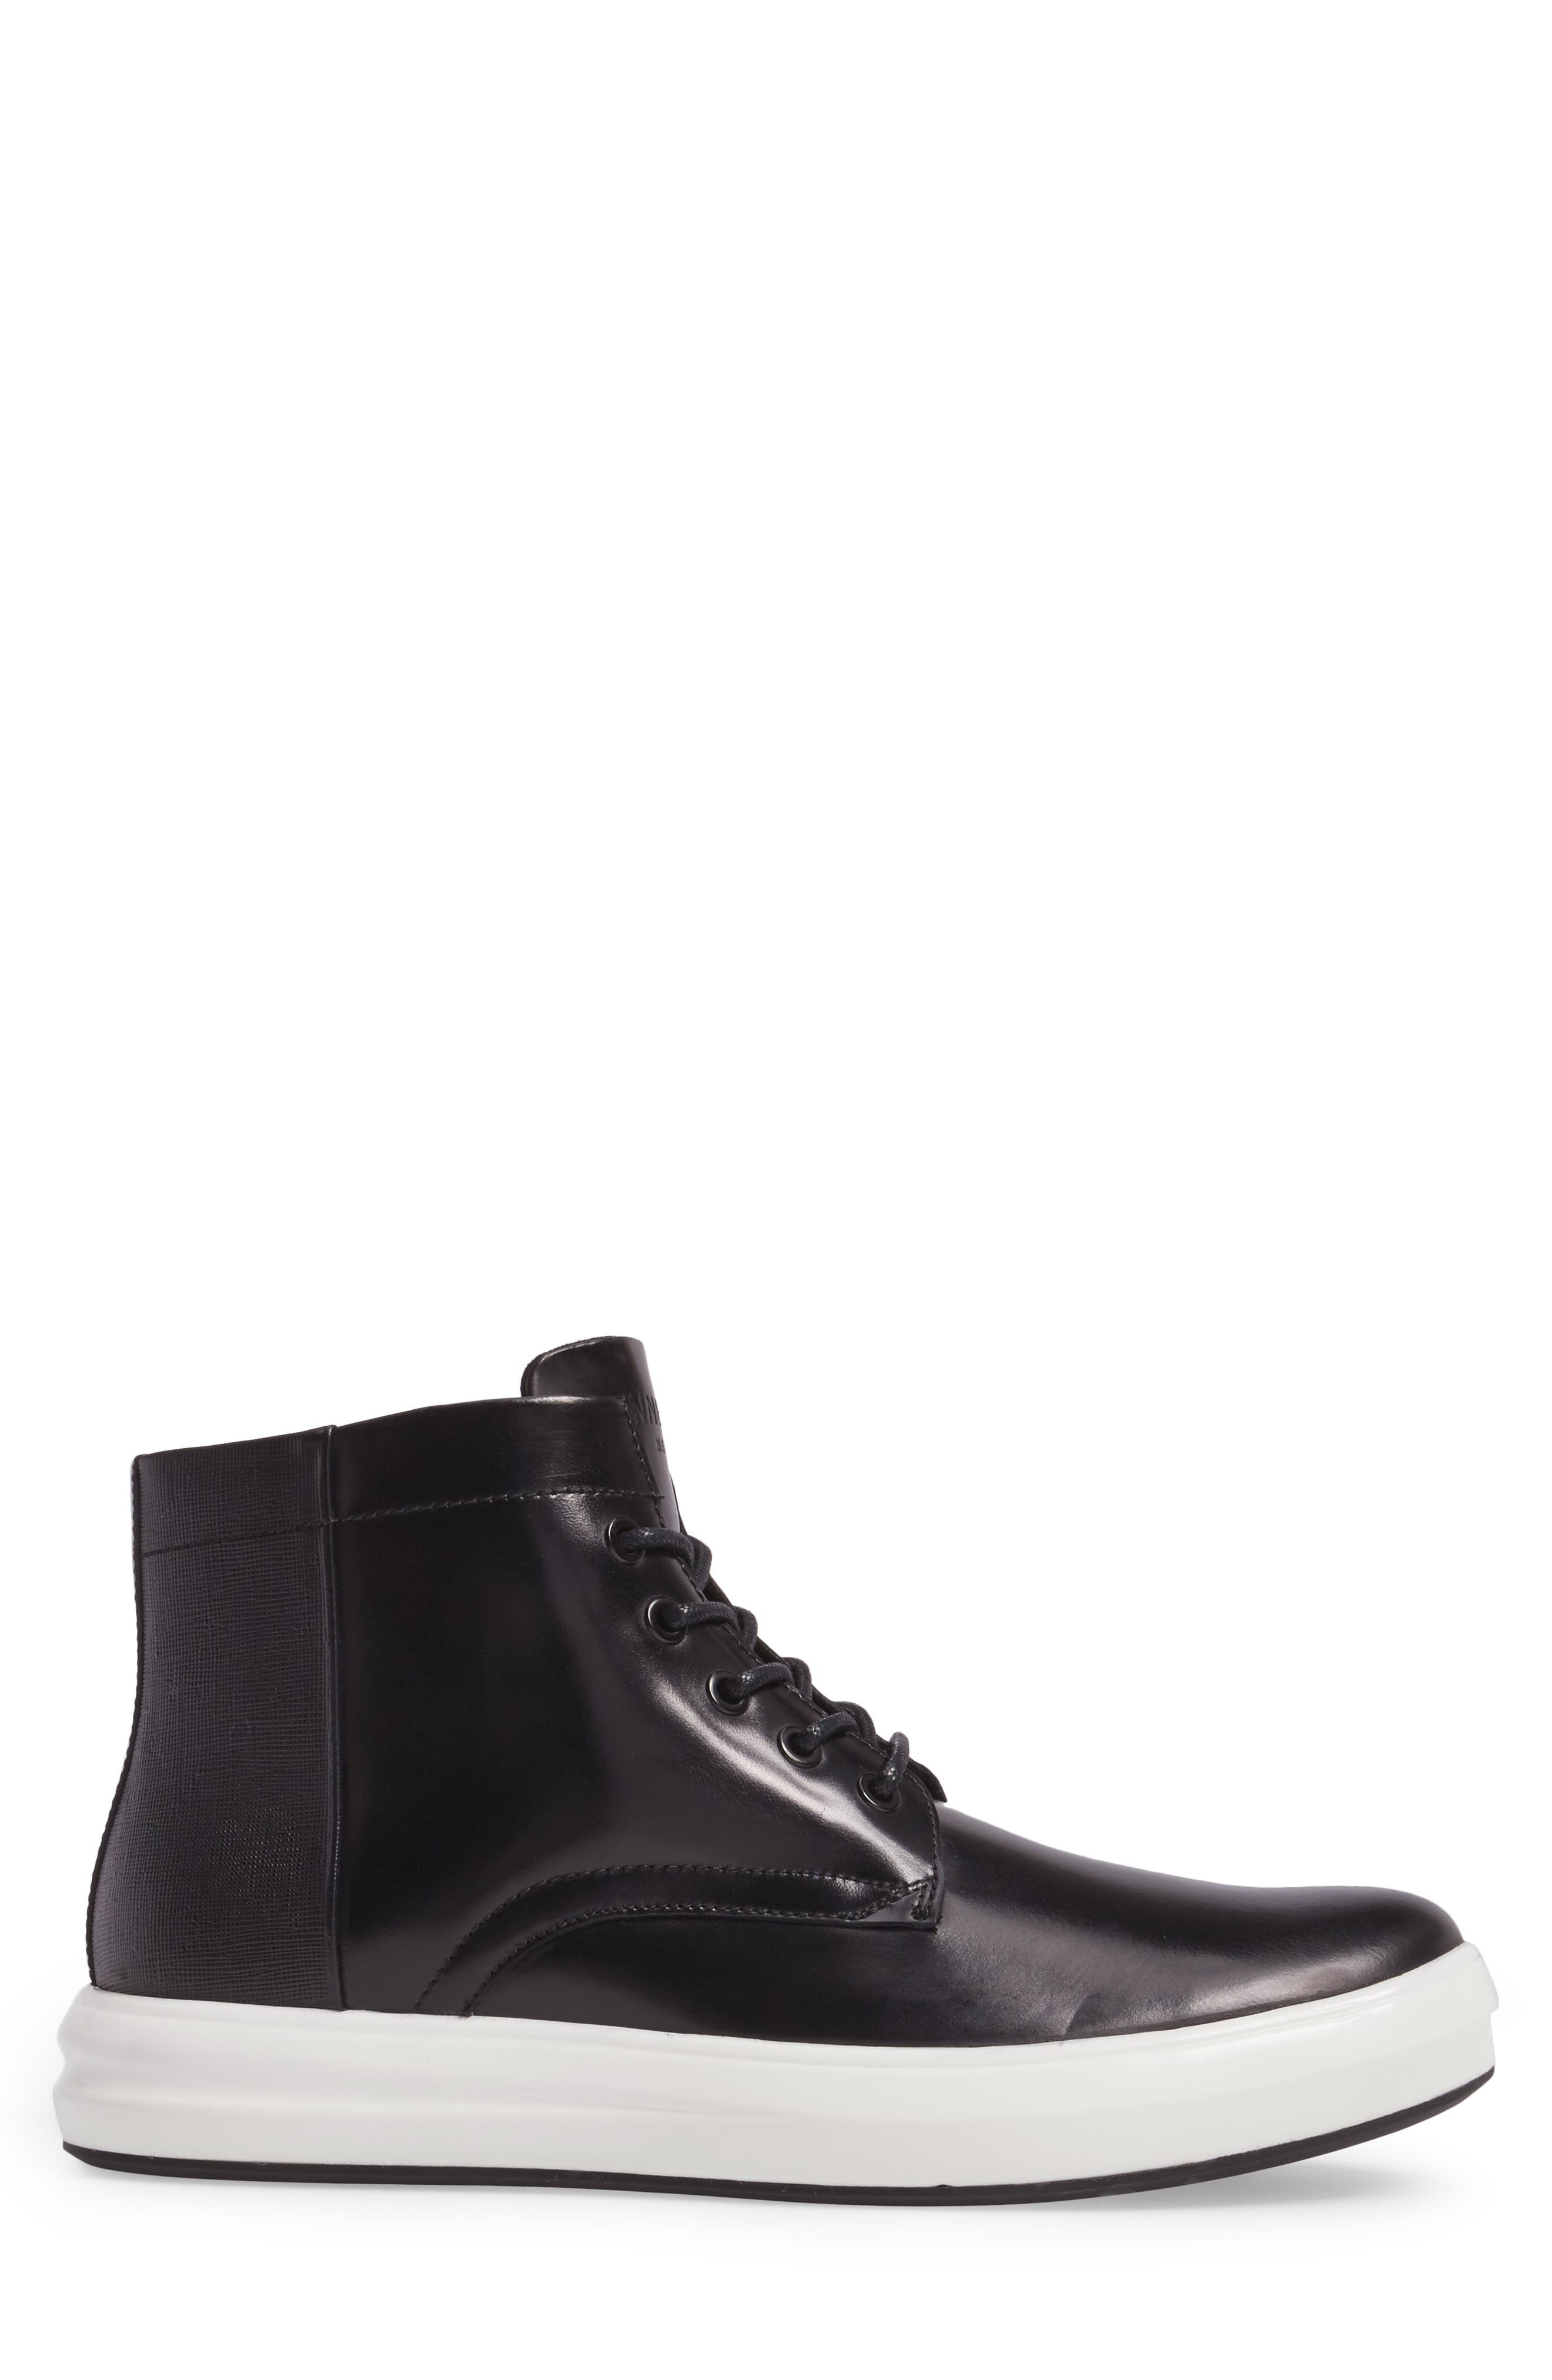 Alternate Image 3  - Kenneth Cole New York High Top Sneaker (Men)